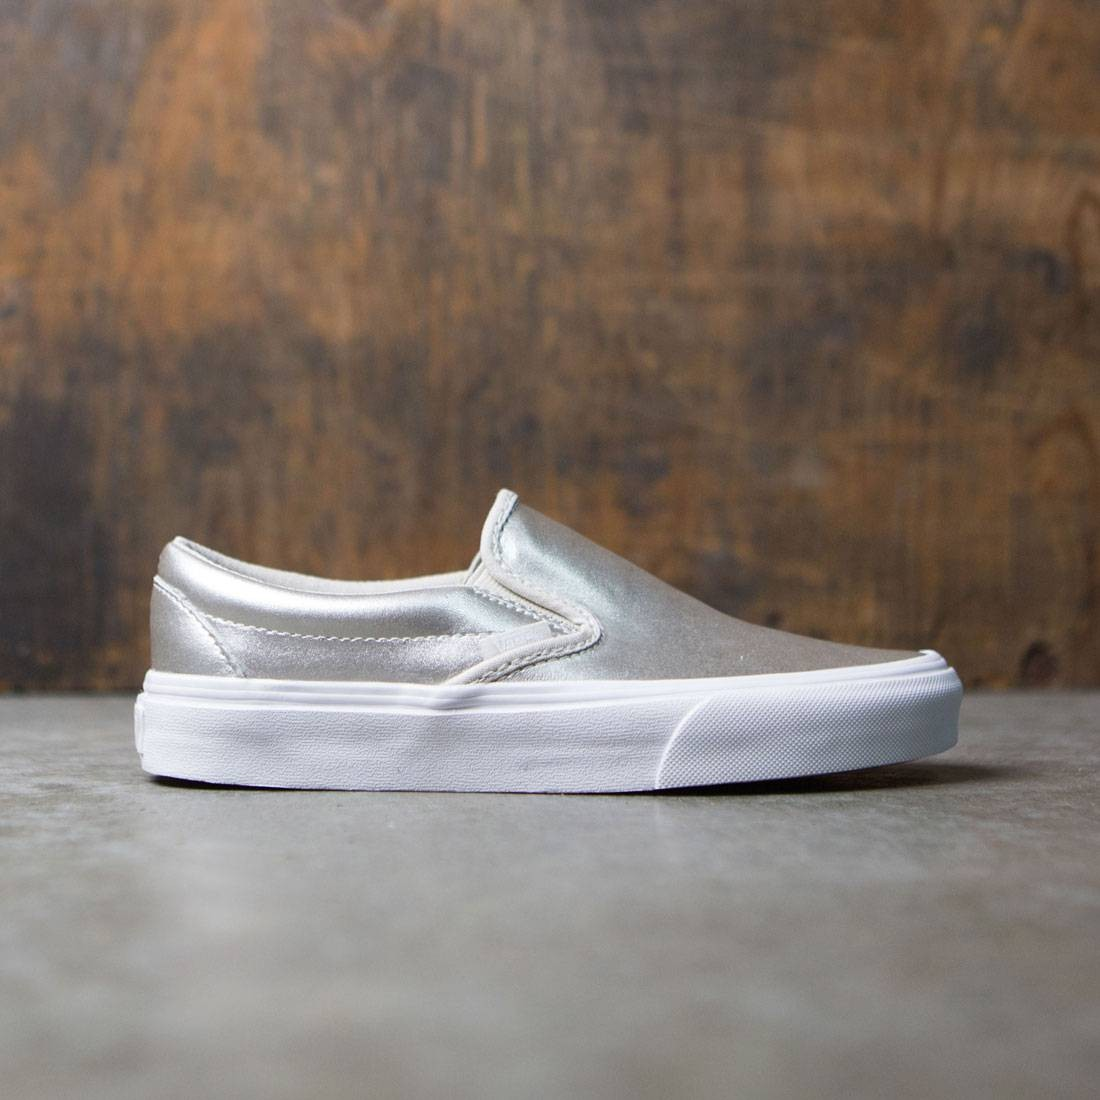 Vans Women Classic Slip-On - Metallic Leather silver true white 405b81cd0